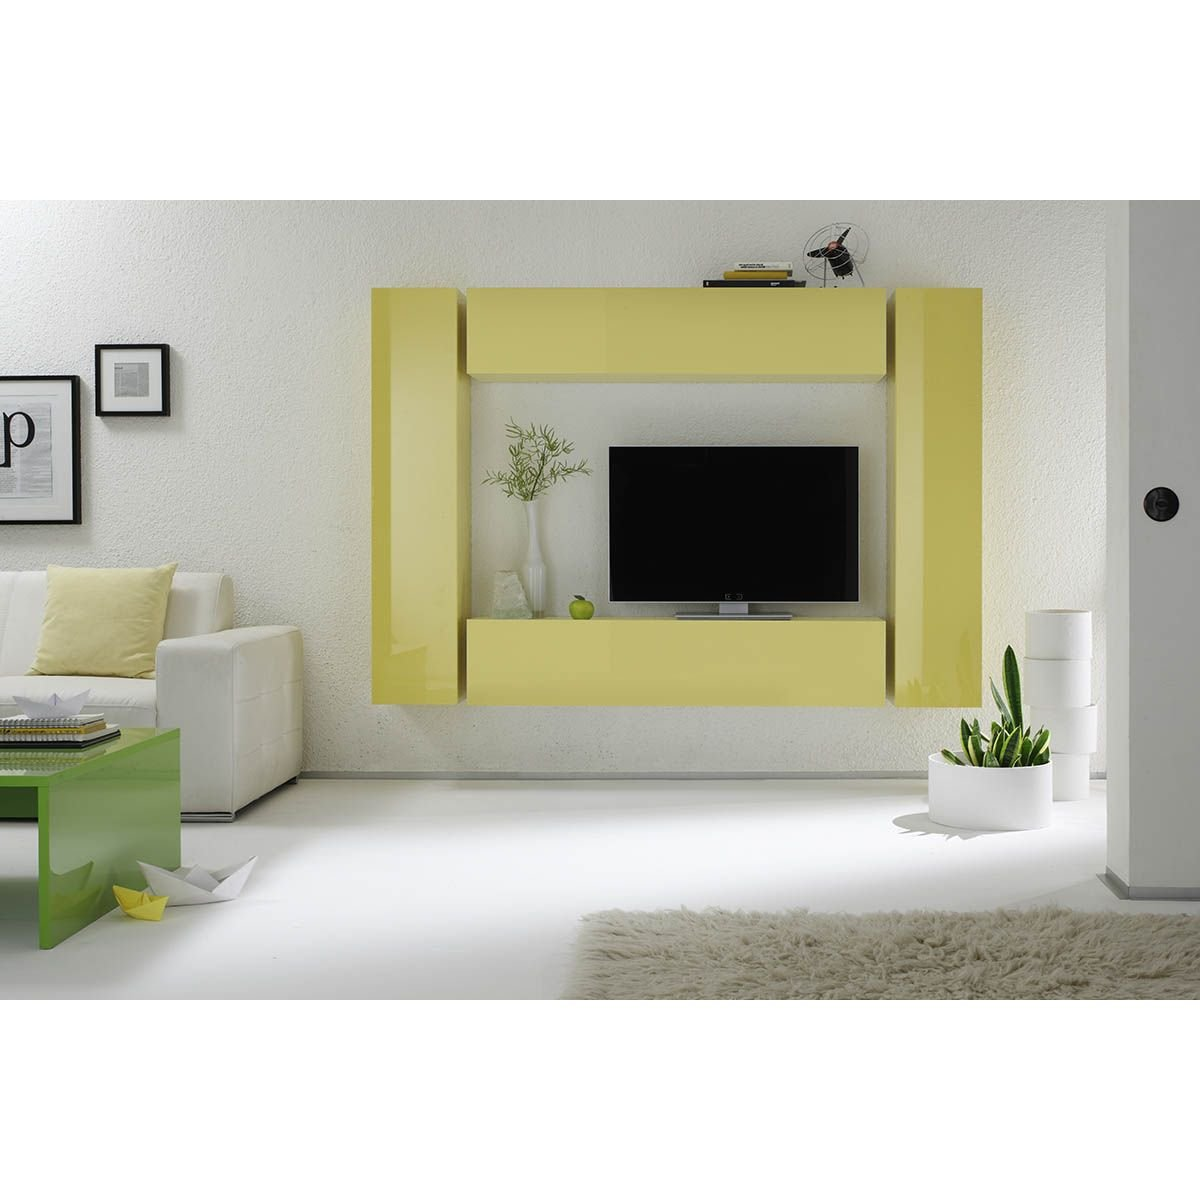 Miliboo - Elemento de Pared TV Colored Horizontal o Vertical ...